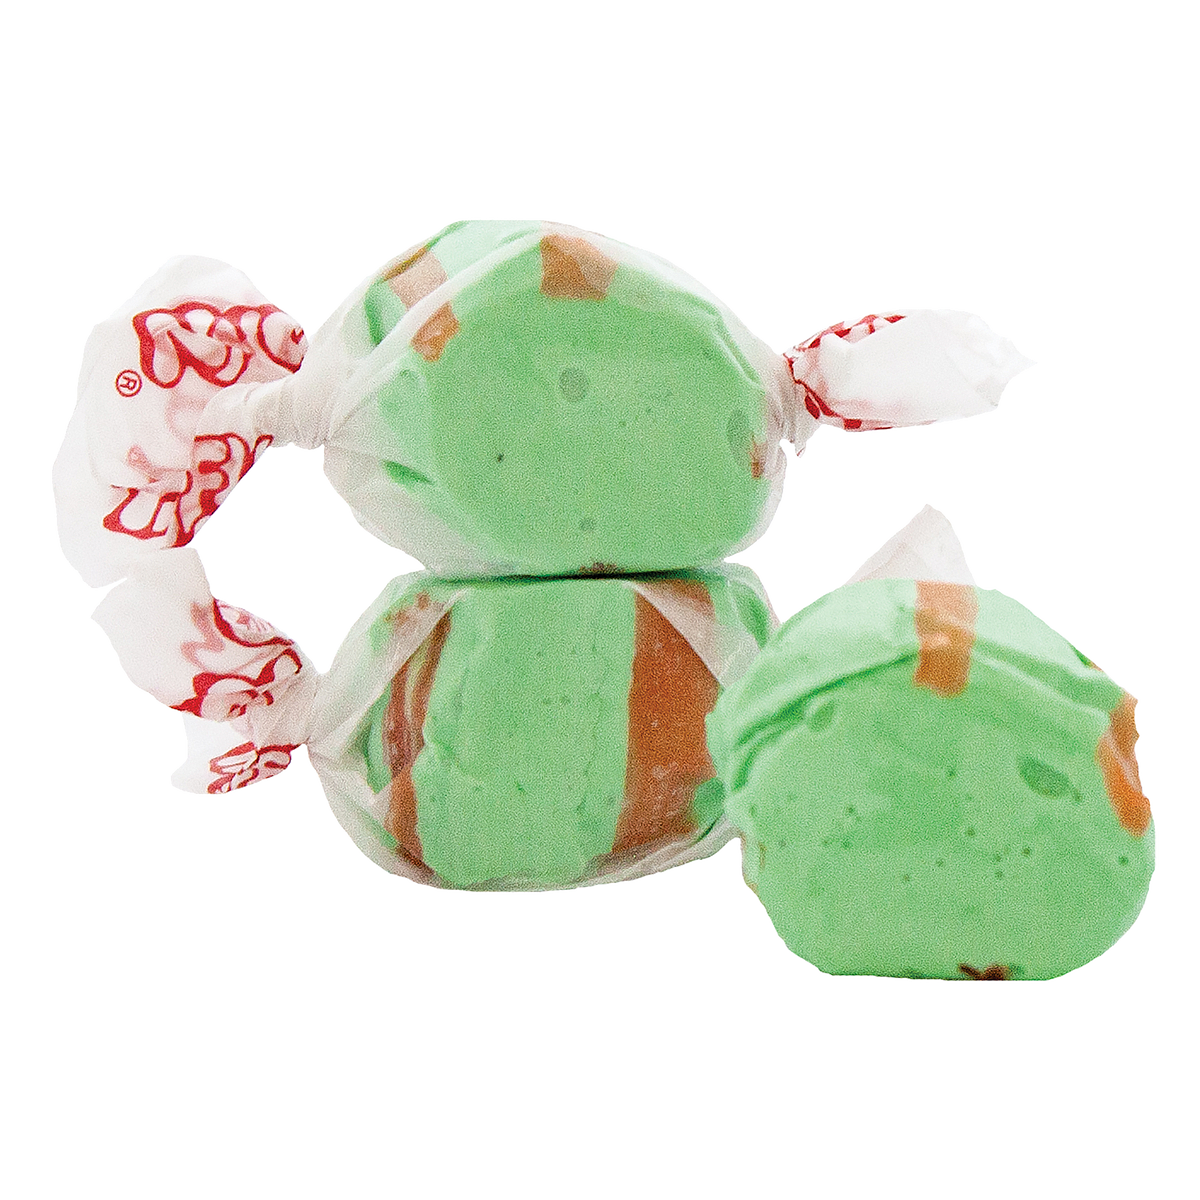 Pickle Flavor Salt Water Taffy